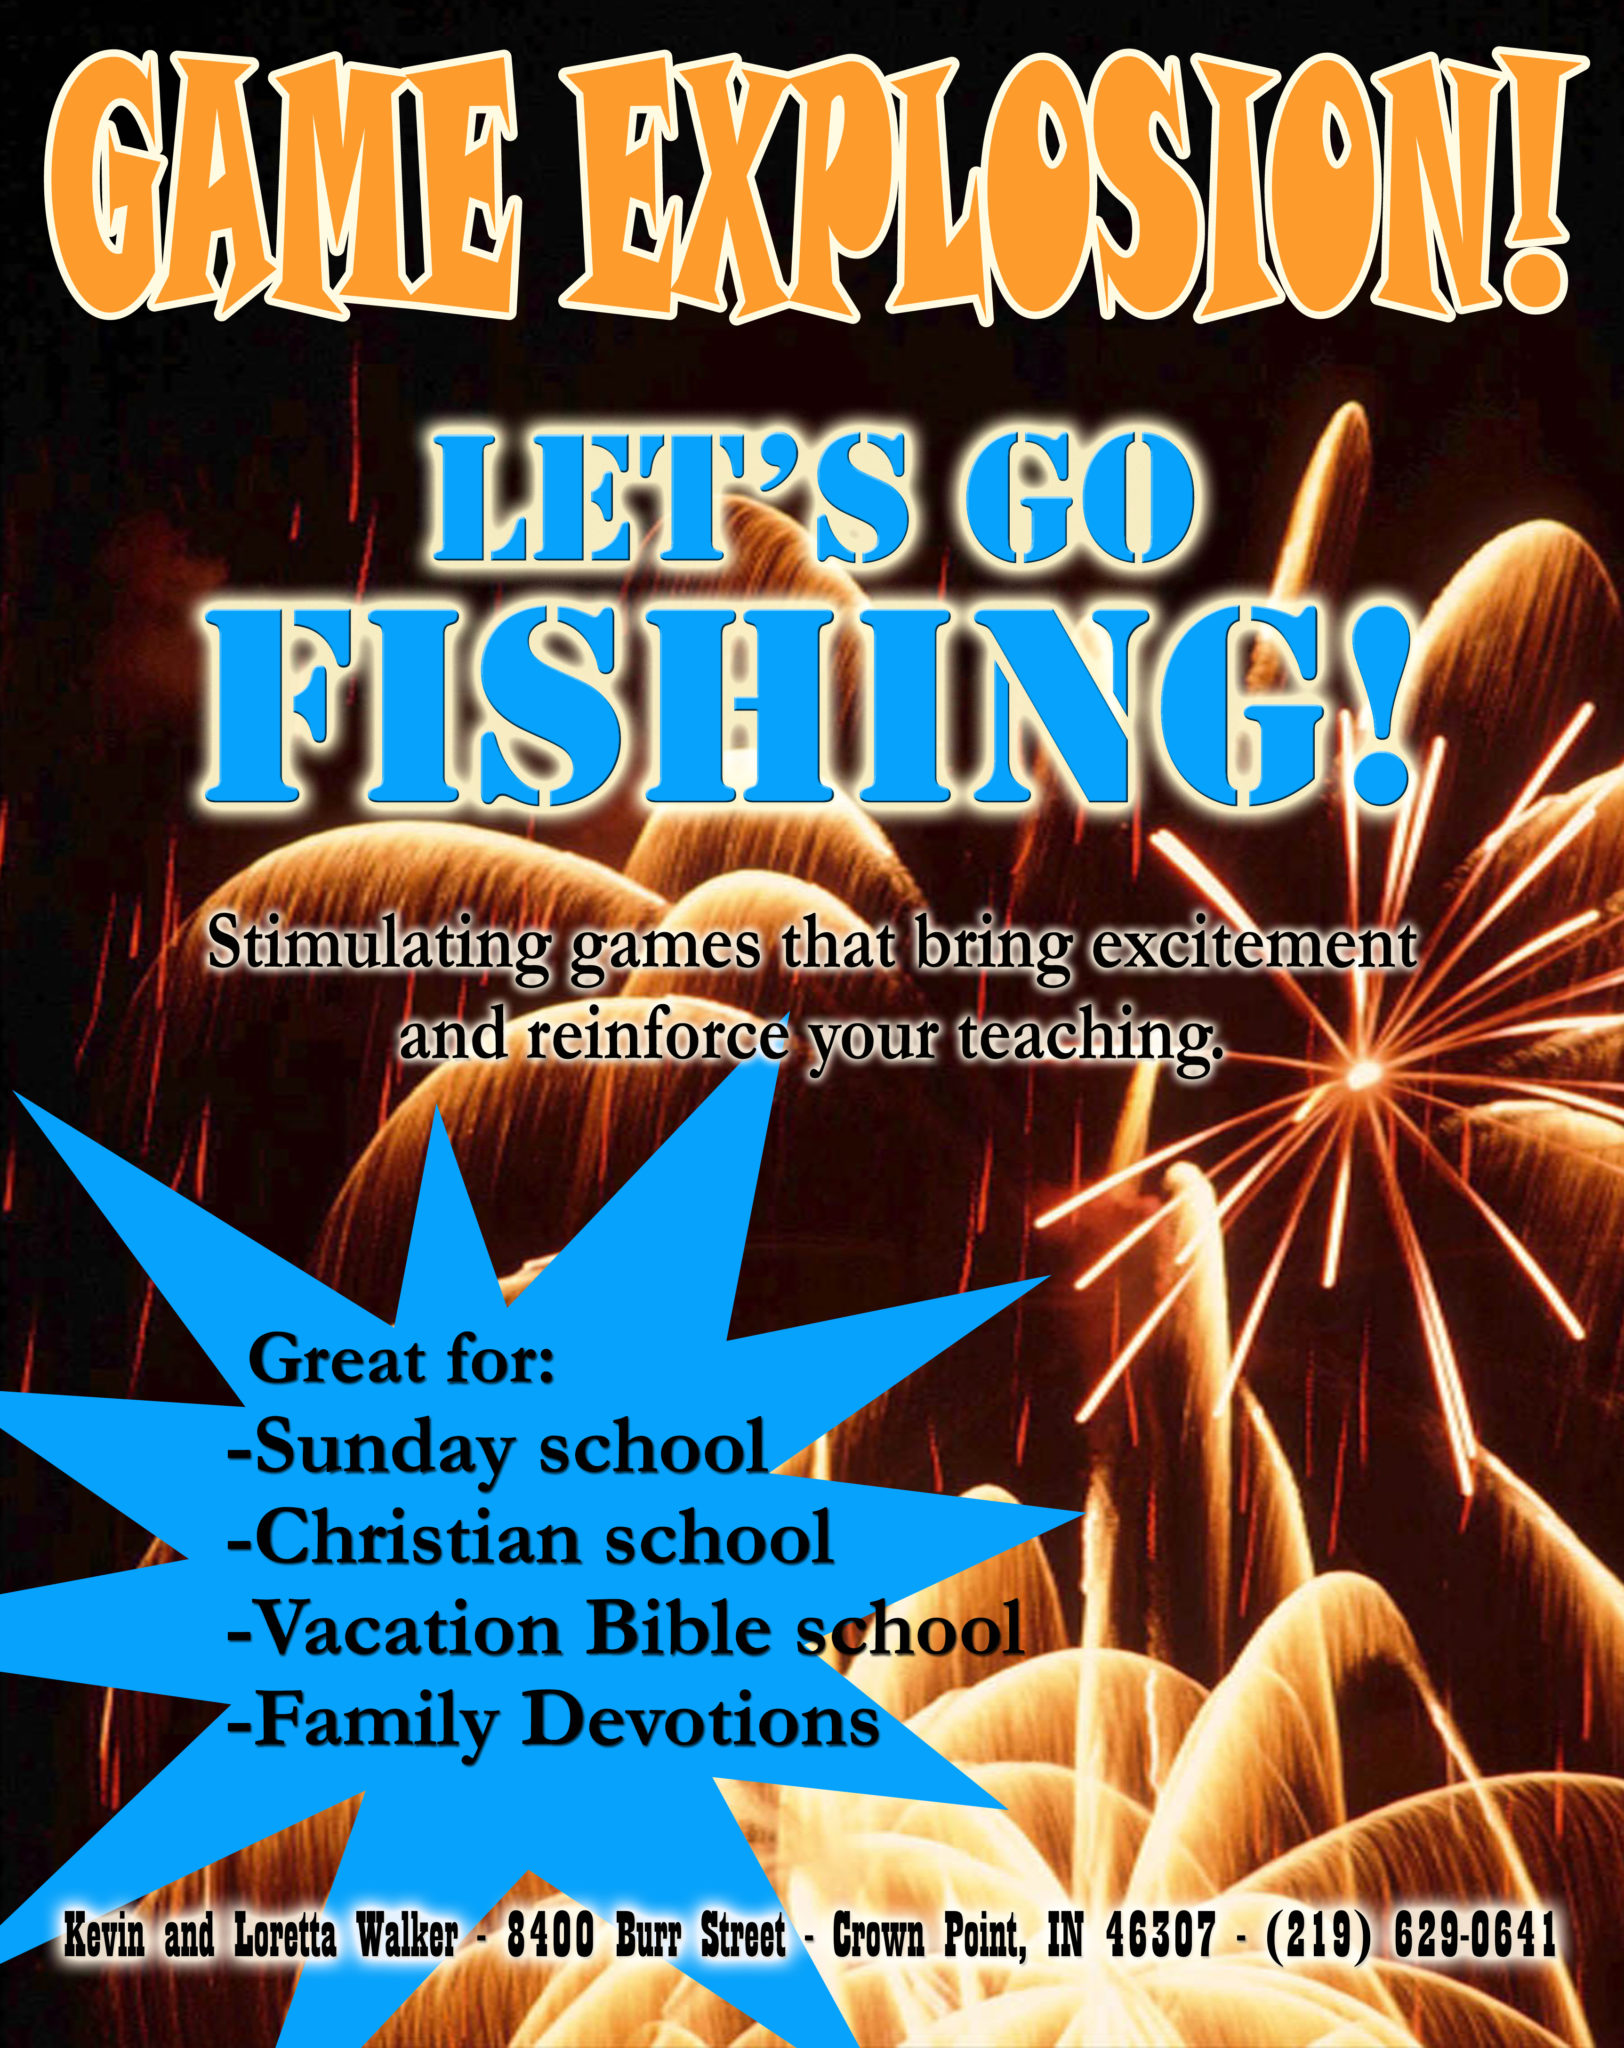 christian games for kids let's go fishing kevin and loretta walker